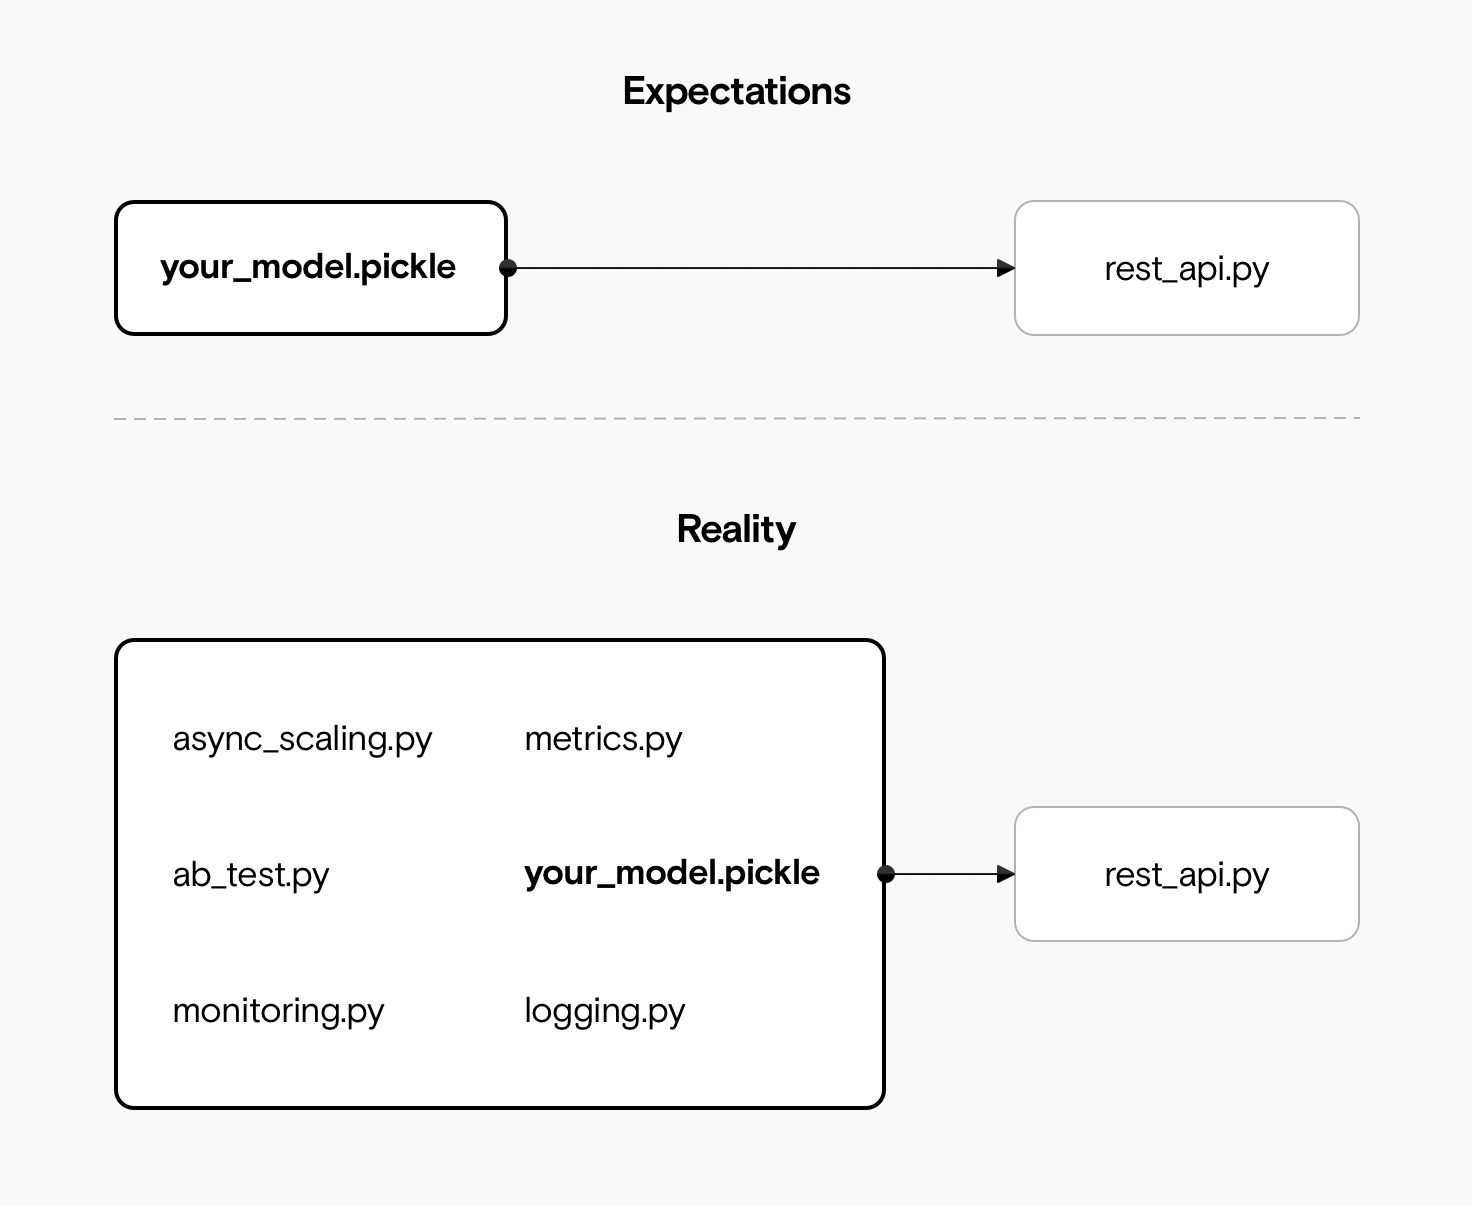 A simple architecture on the left showing just a model file and a rest_api.py file. On the right is reality, which includes a collection of modules, including metrics, logging, monitoring, and AB testing.